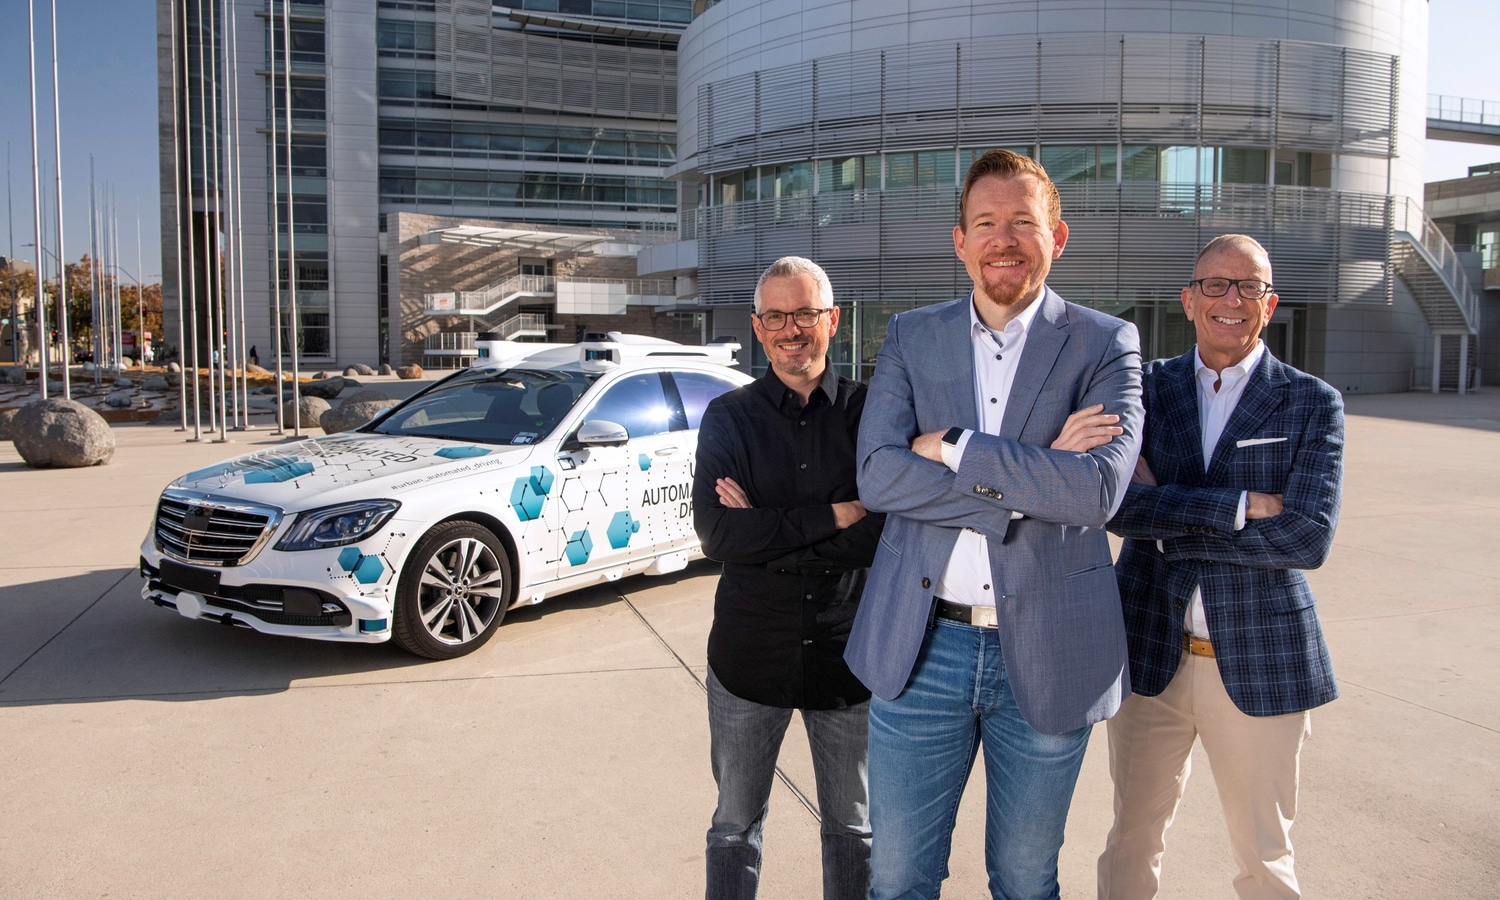 Mercedes-Benz Clase S y Bosh automated driving